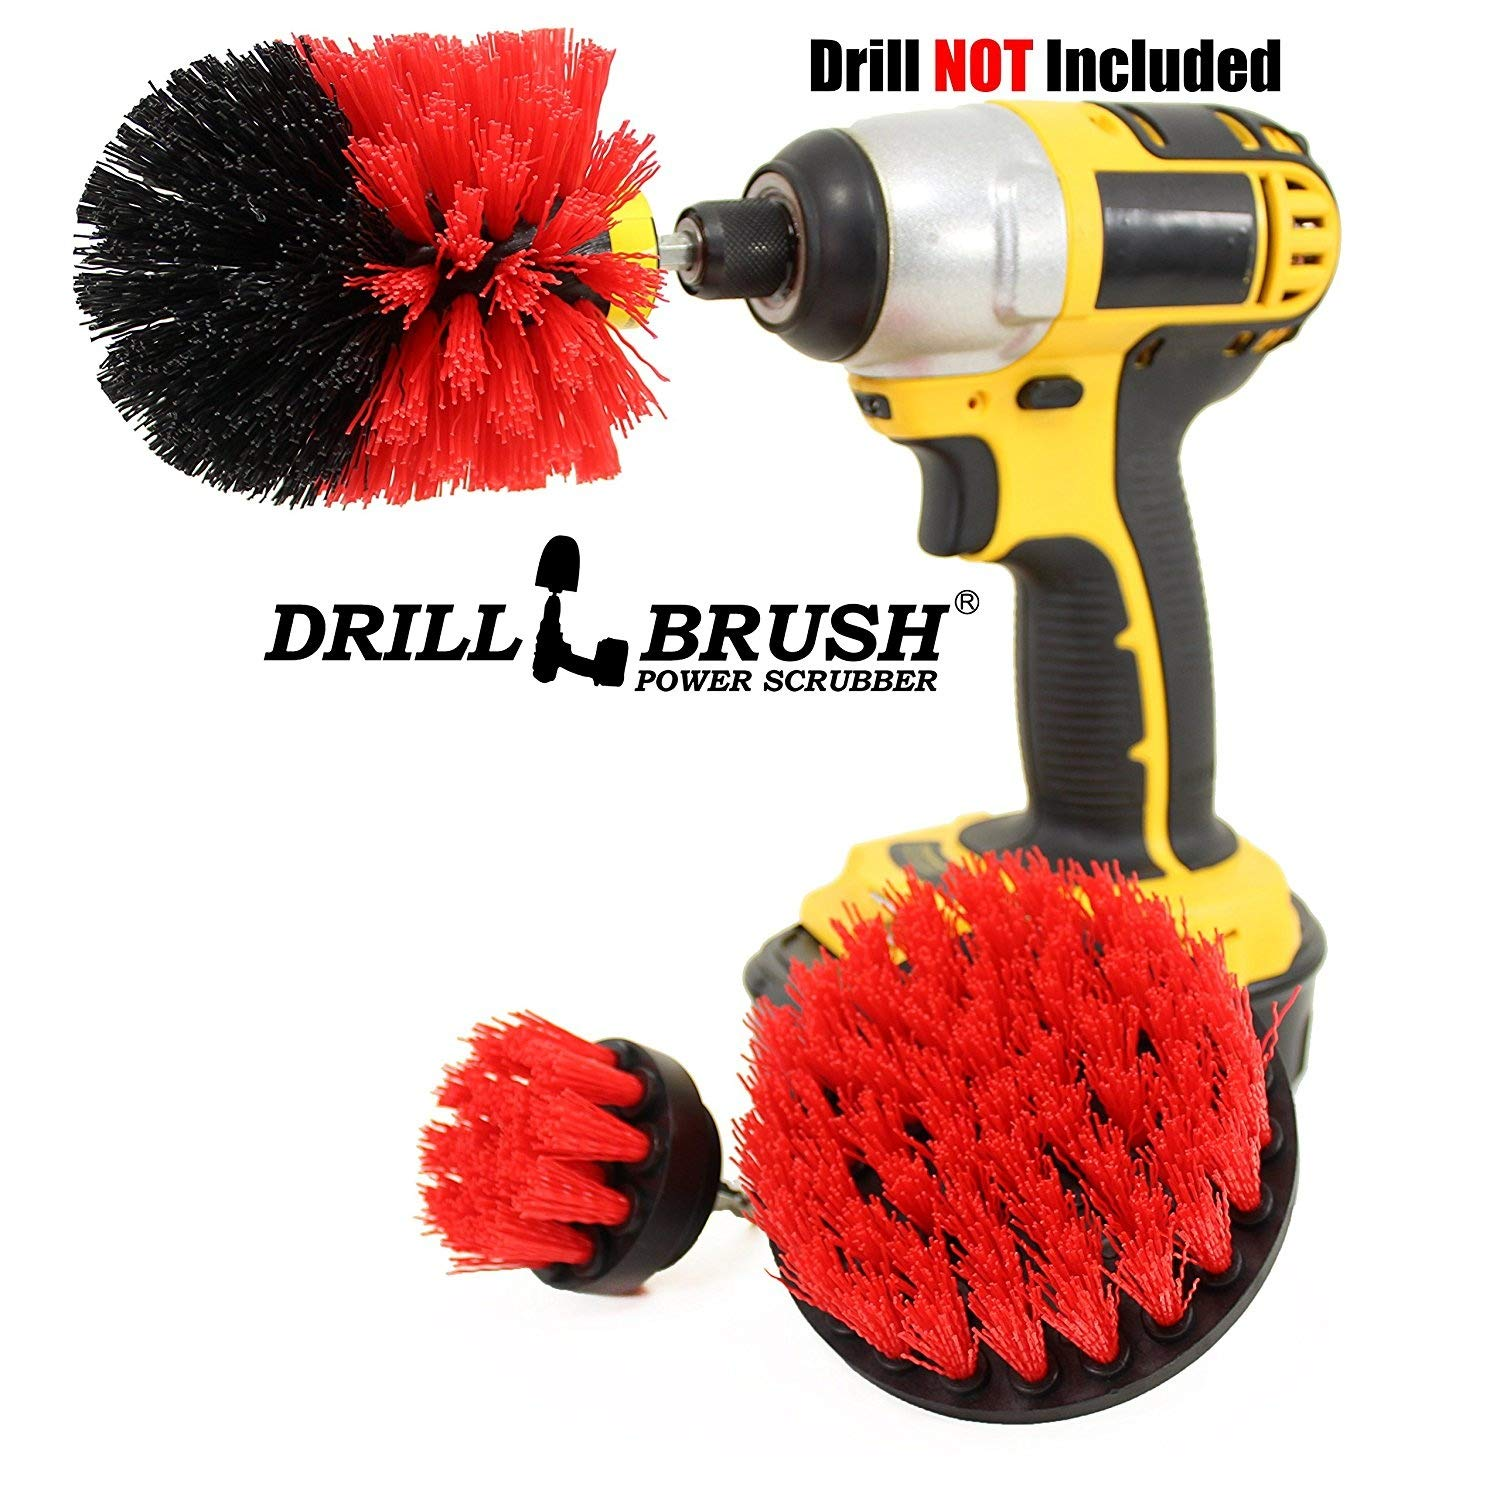 Drillbrush Bathroom Surfaces Tub, Shower, Tile Grout All Purpose Power Scrubber Cleaning Kit Yellow-Orig-Yel-2-4-Lim-Short